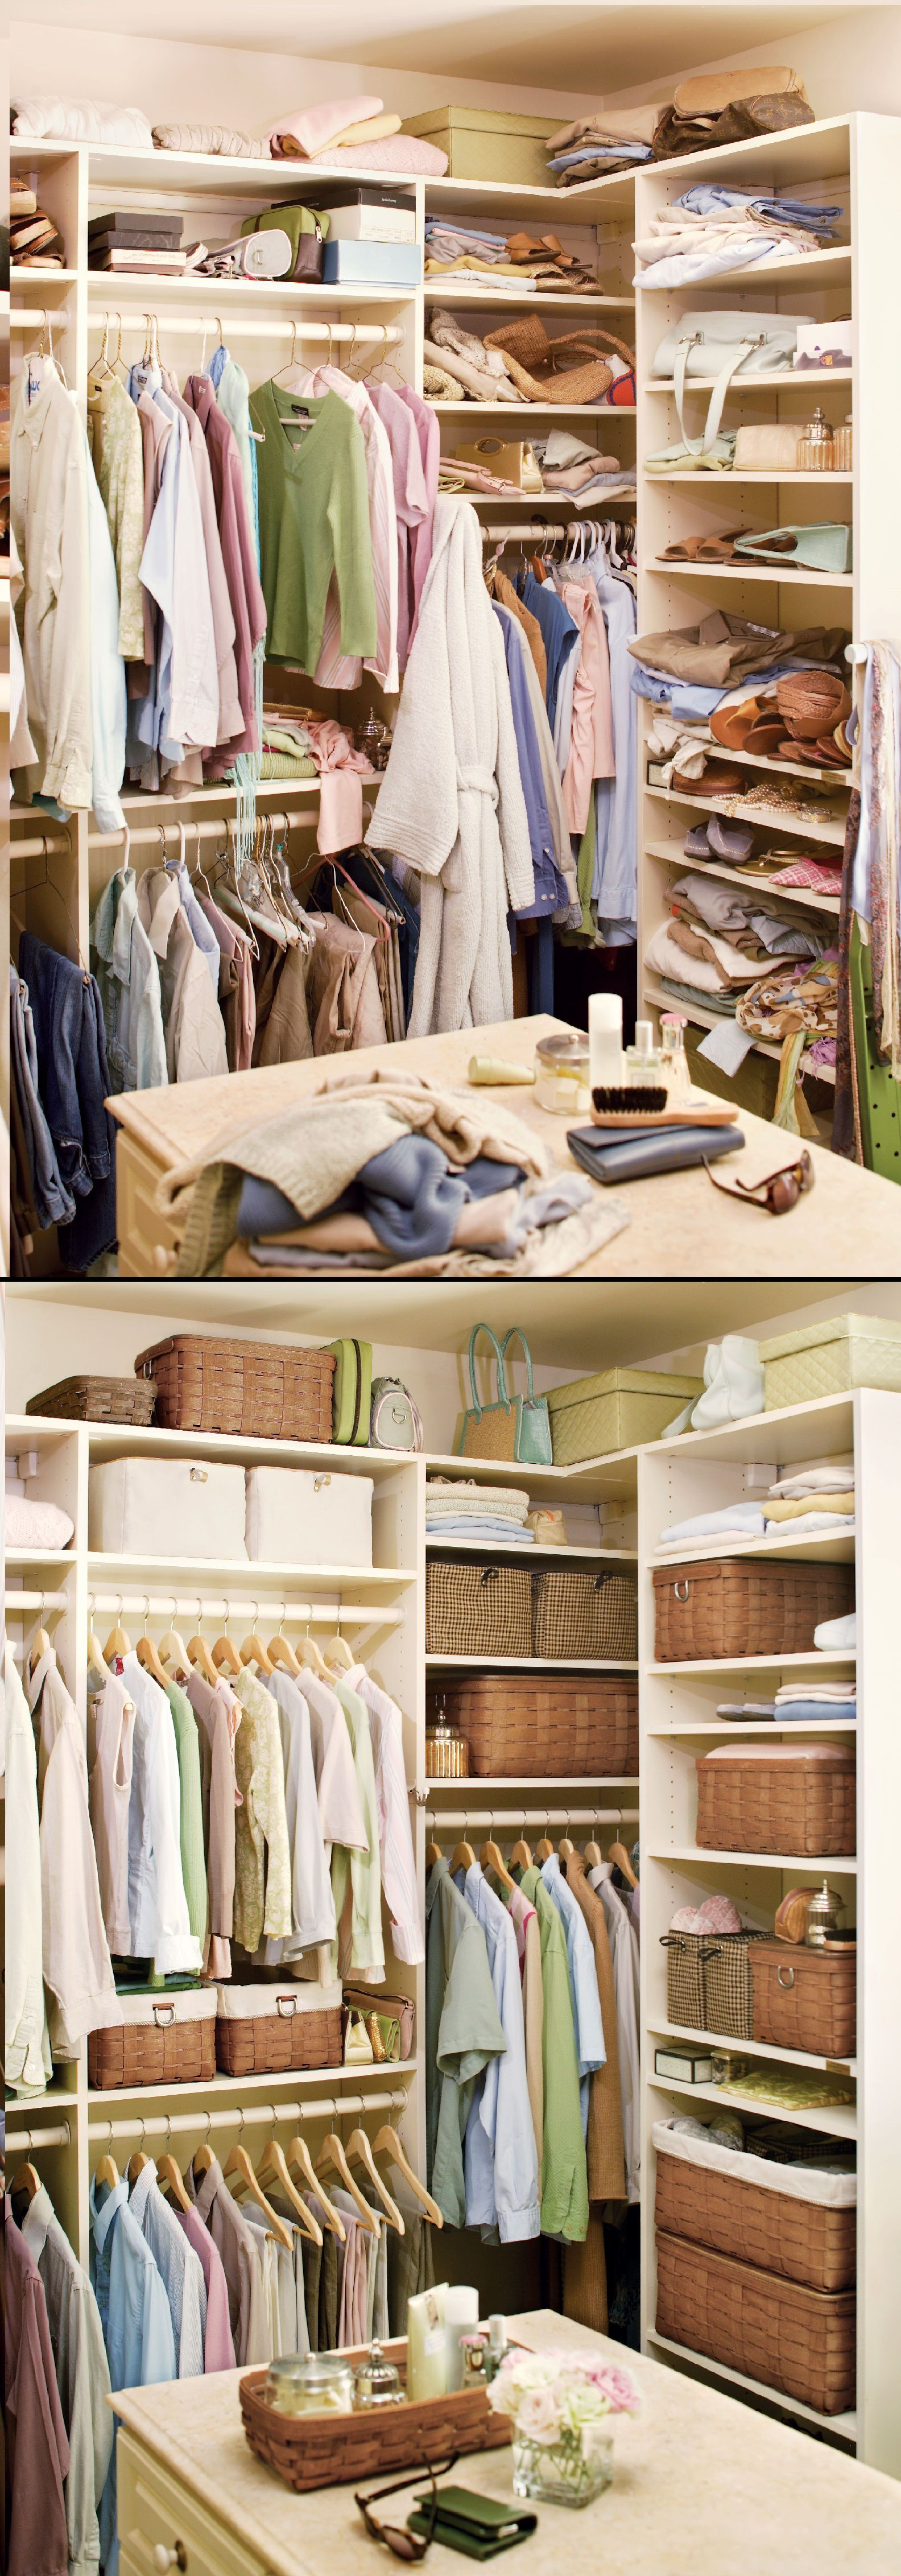 small organizing pieces things today i back most over closet nothing that jamie come culprit a clothes am and organization say tips we of your same tend too the to wear have for us on can much yet